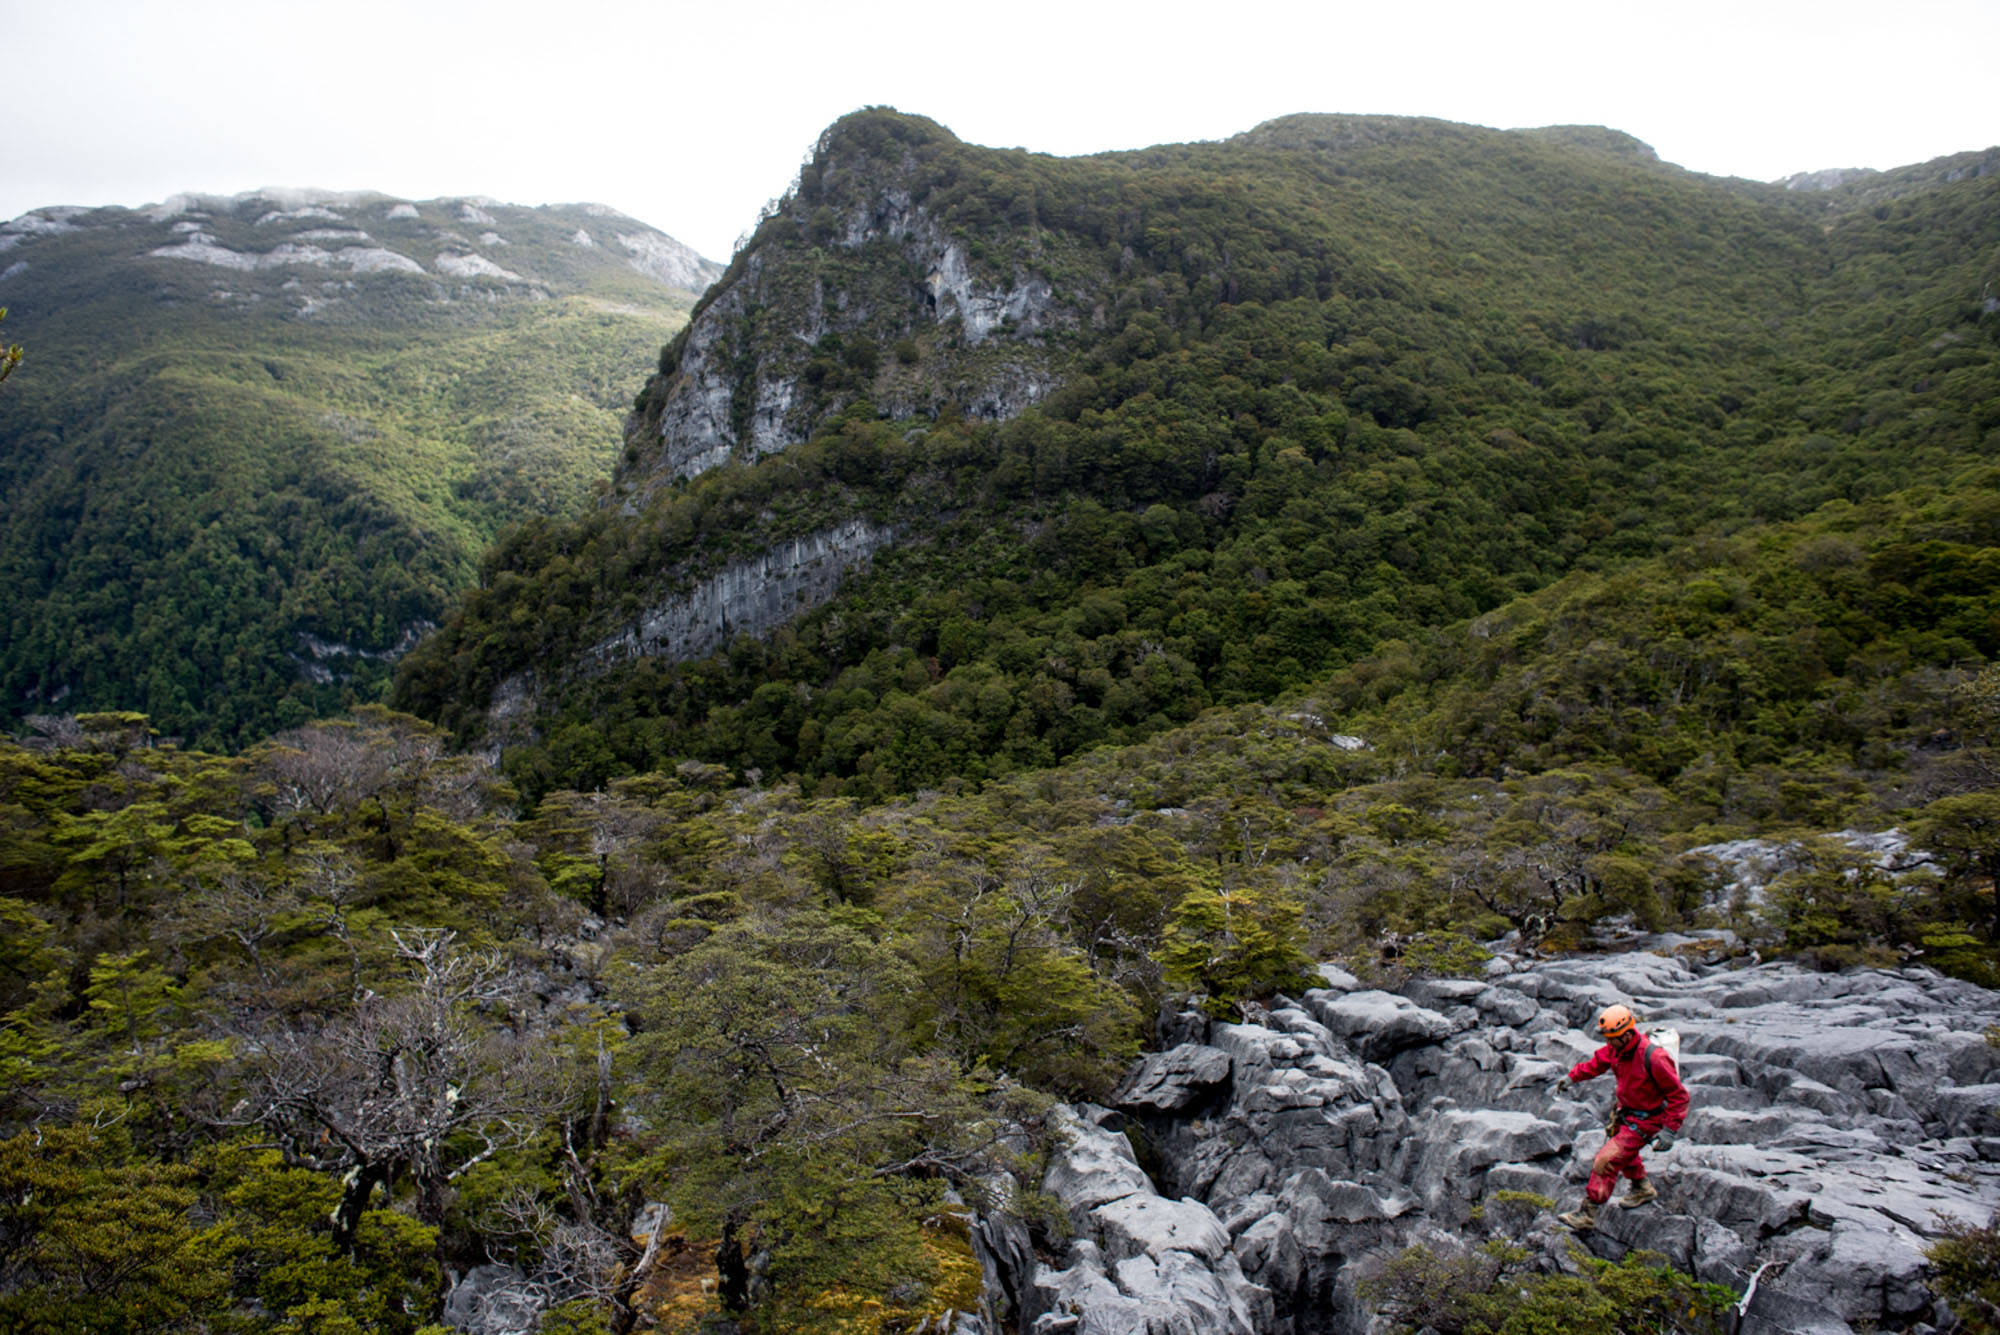 DSC_0782-Craig on walk of Karst rock from Bulmer to camp.jpg